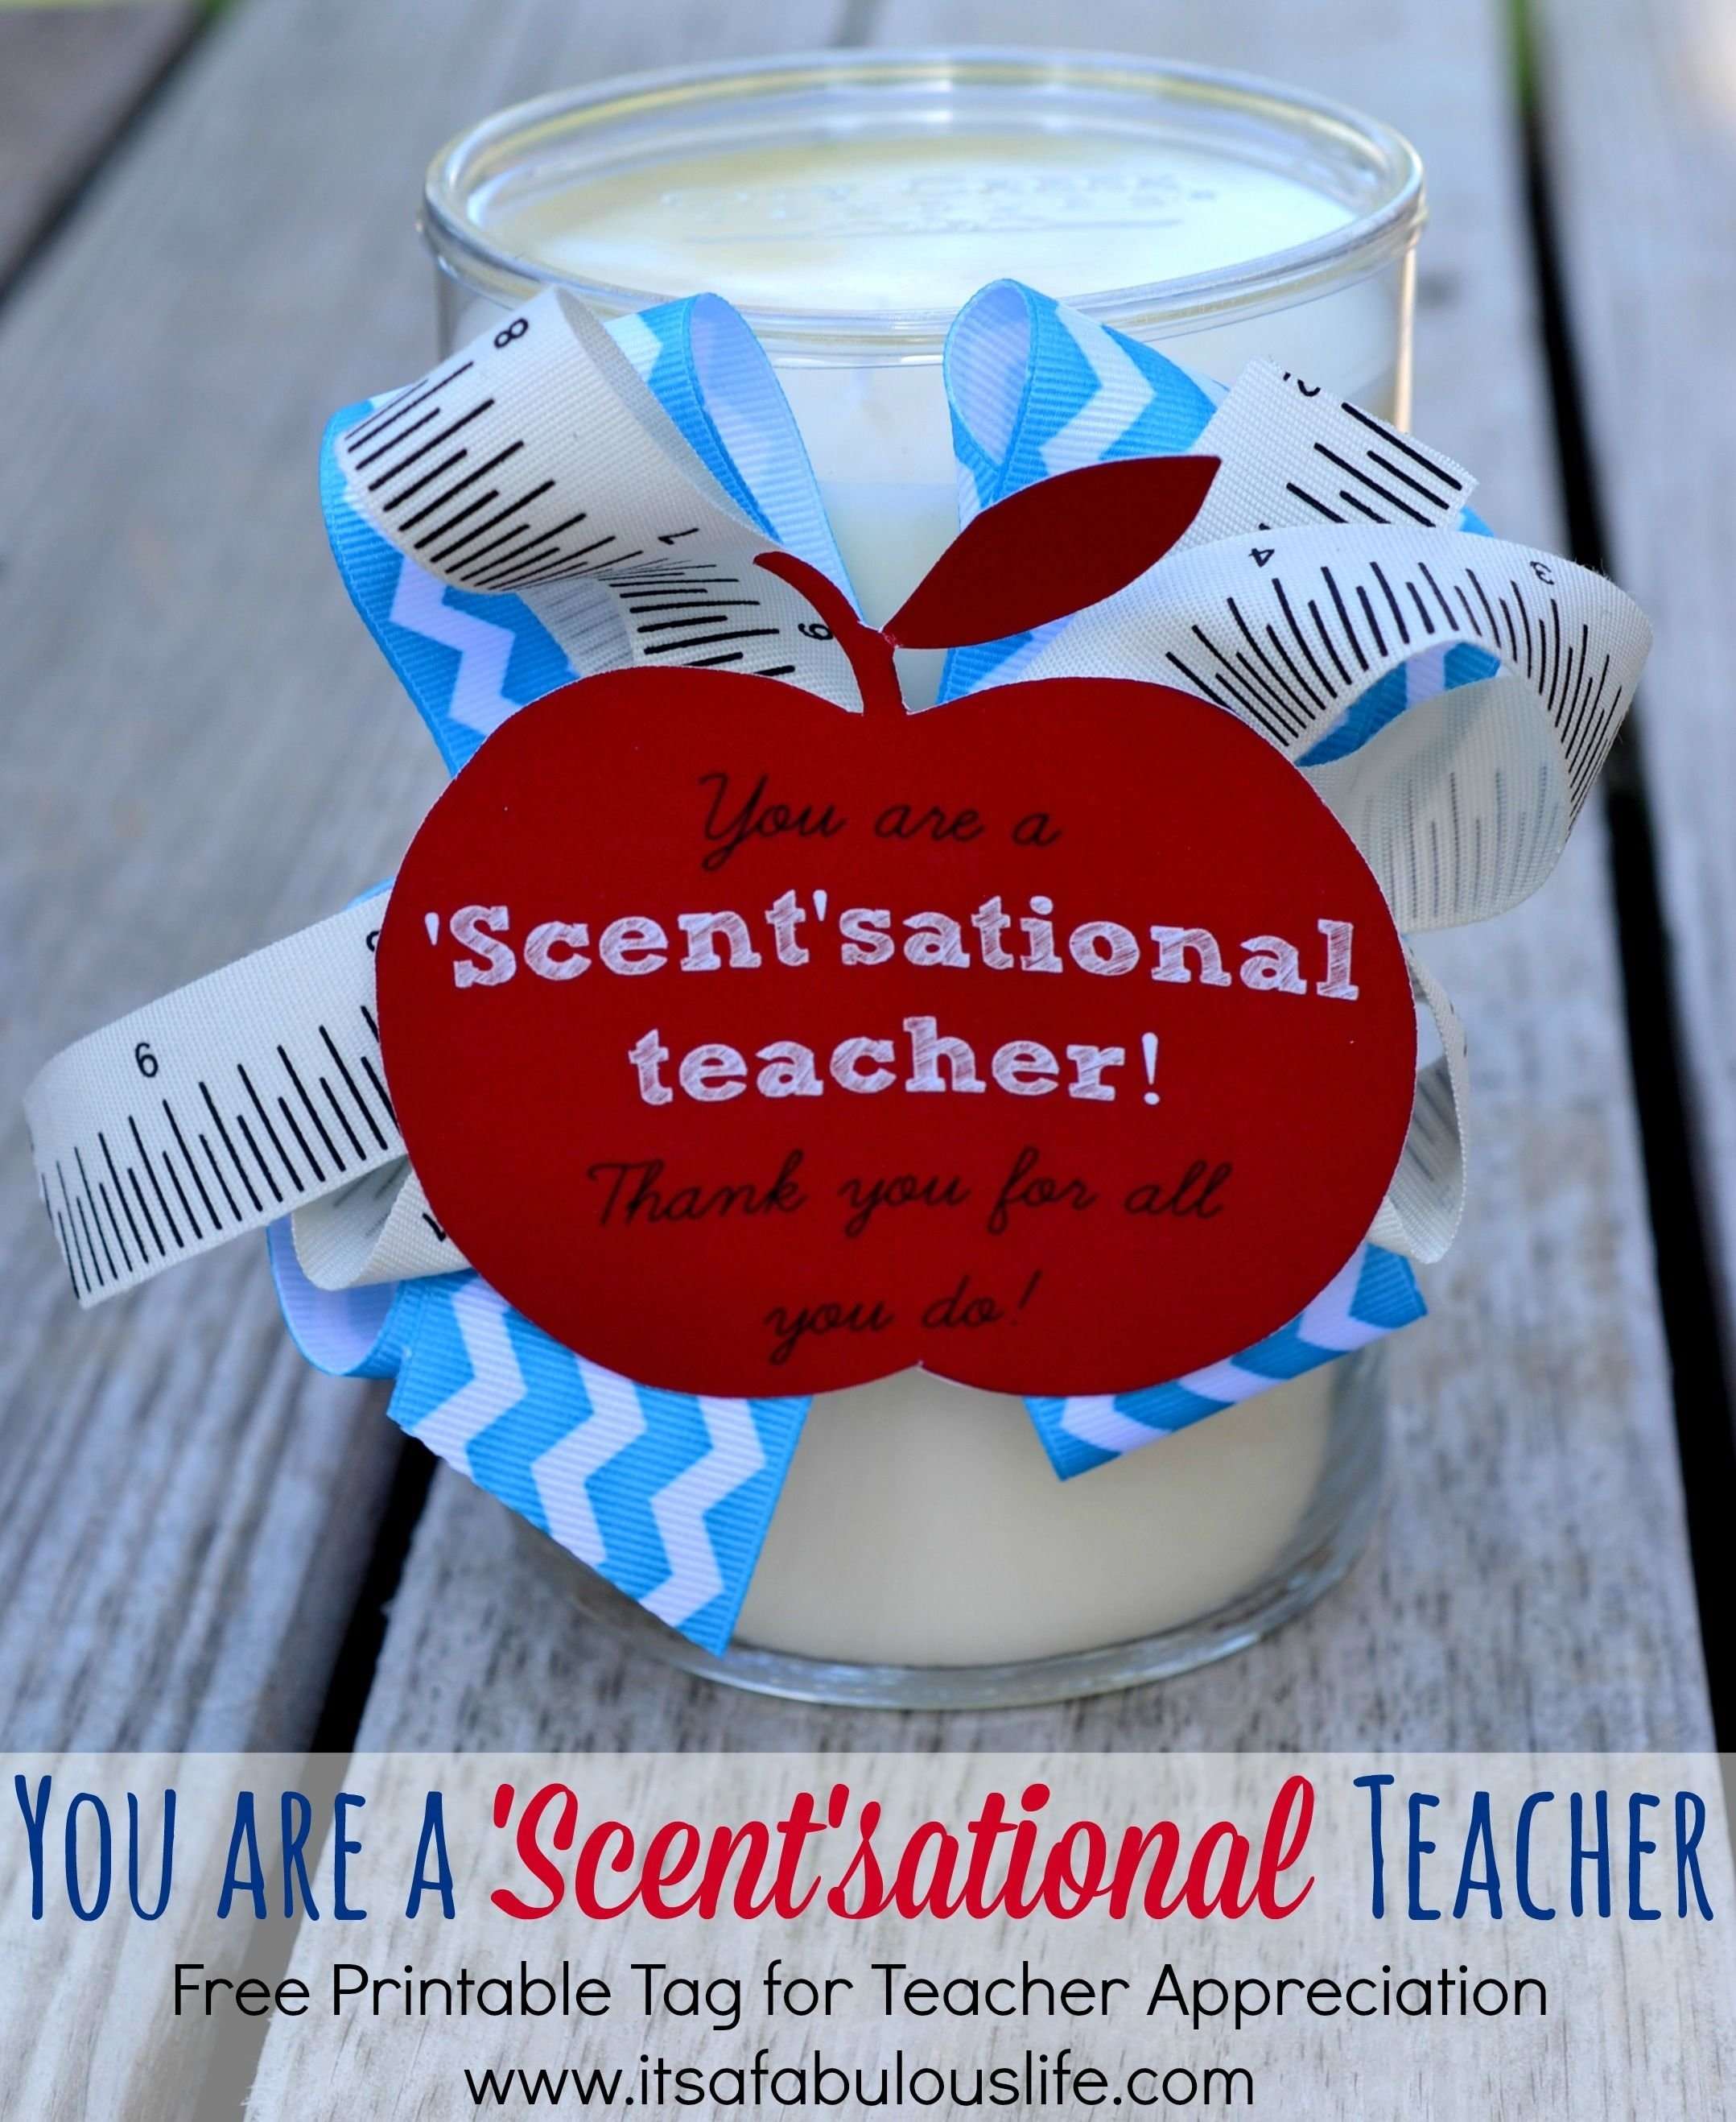 10 Cute Teachers Appreciation Week Gift Ideas teacher appreciation week quick easy gift ideas printable tags 5 2020